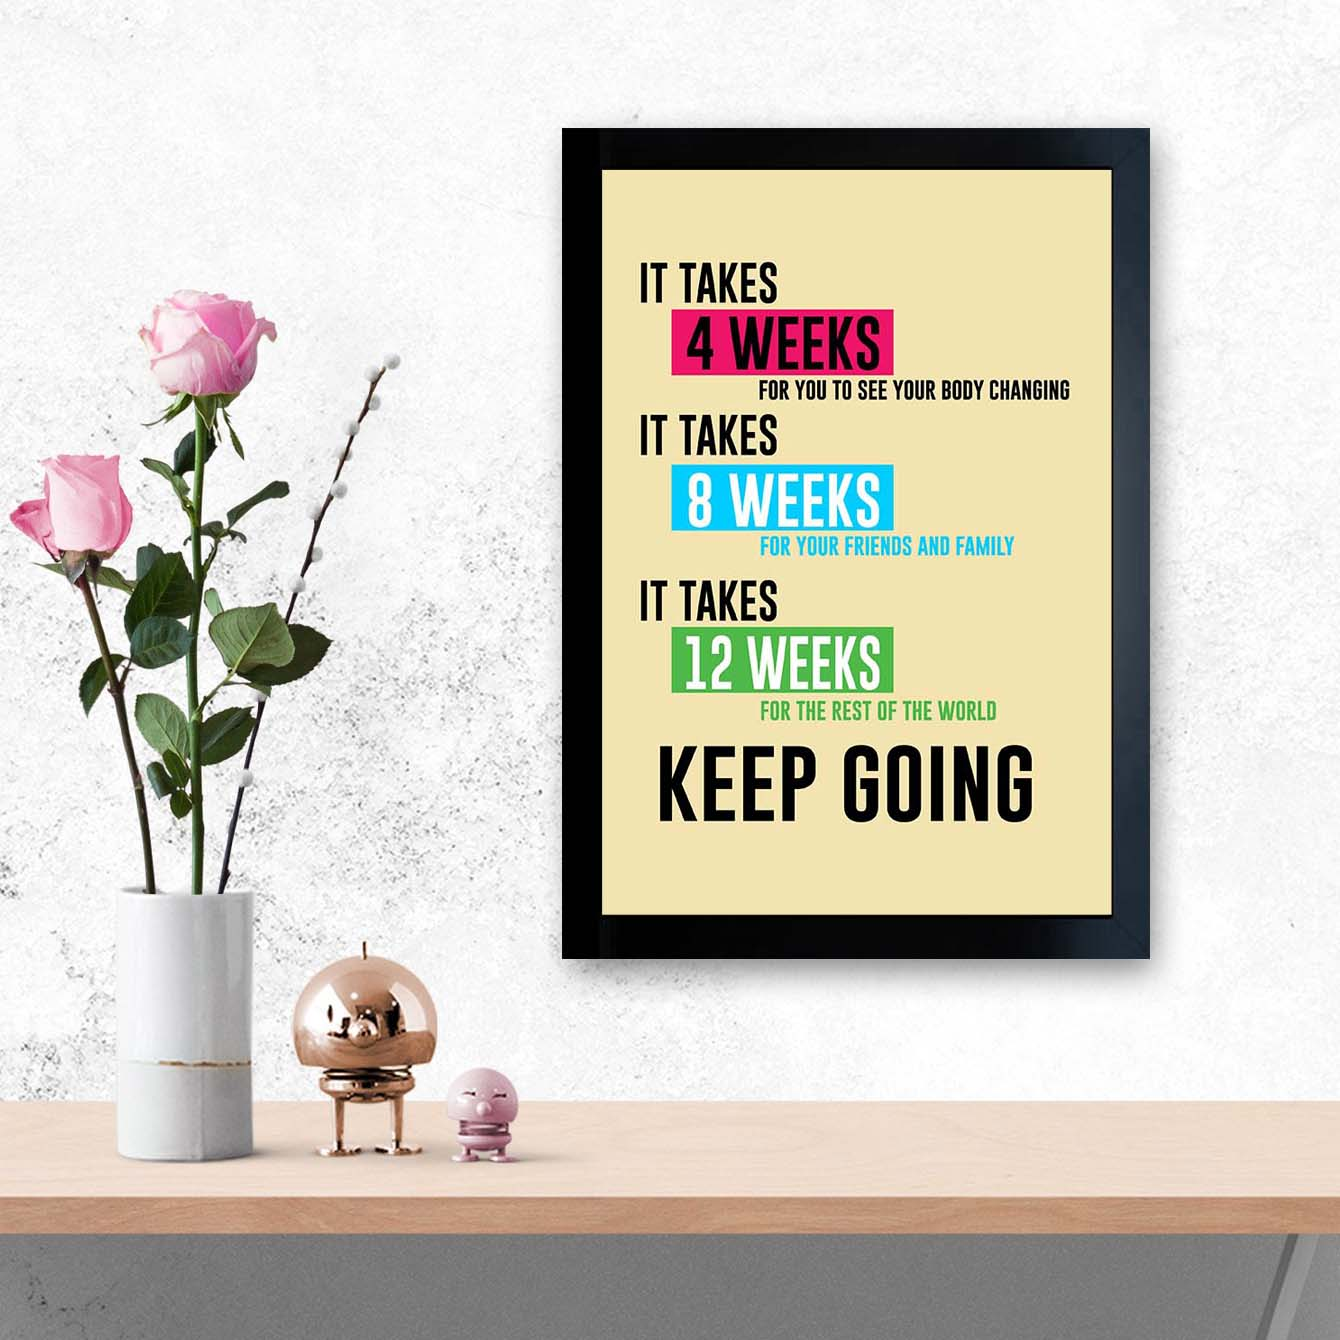 Keep Going Framed Poster